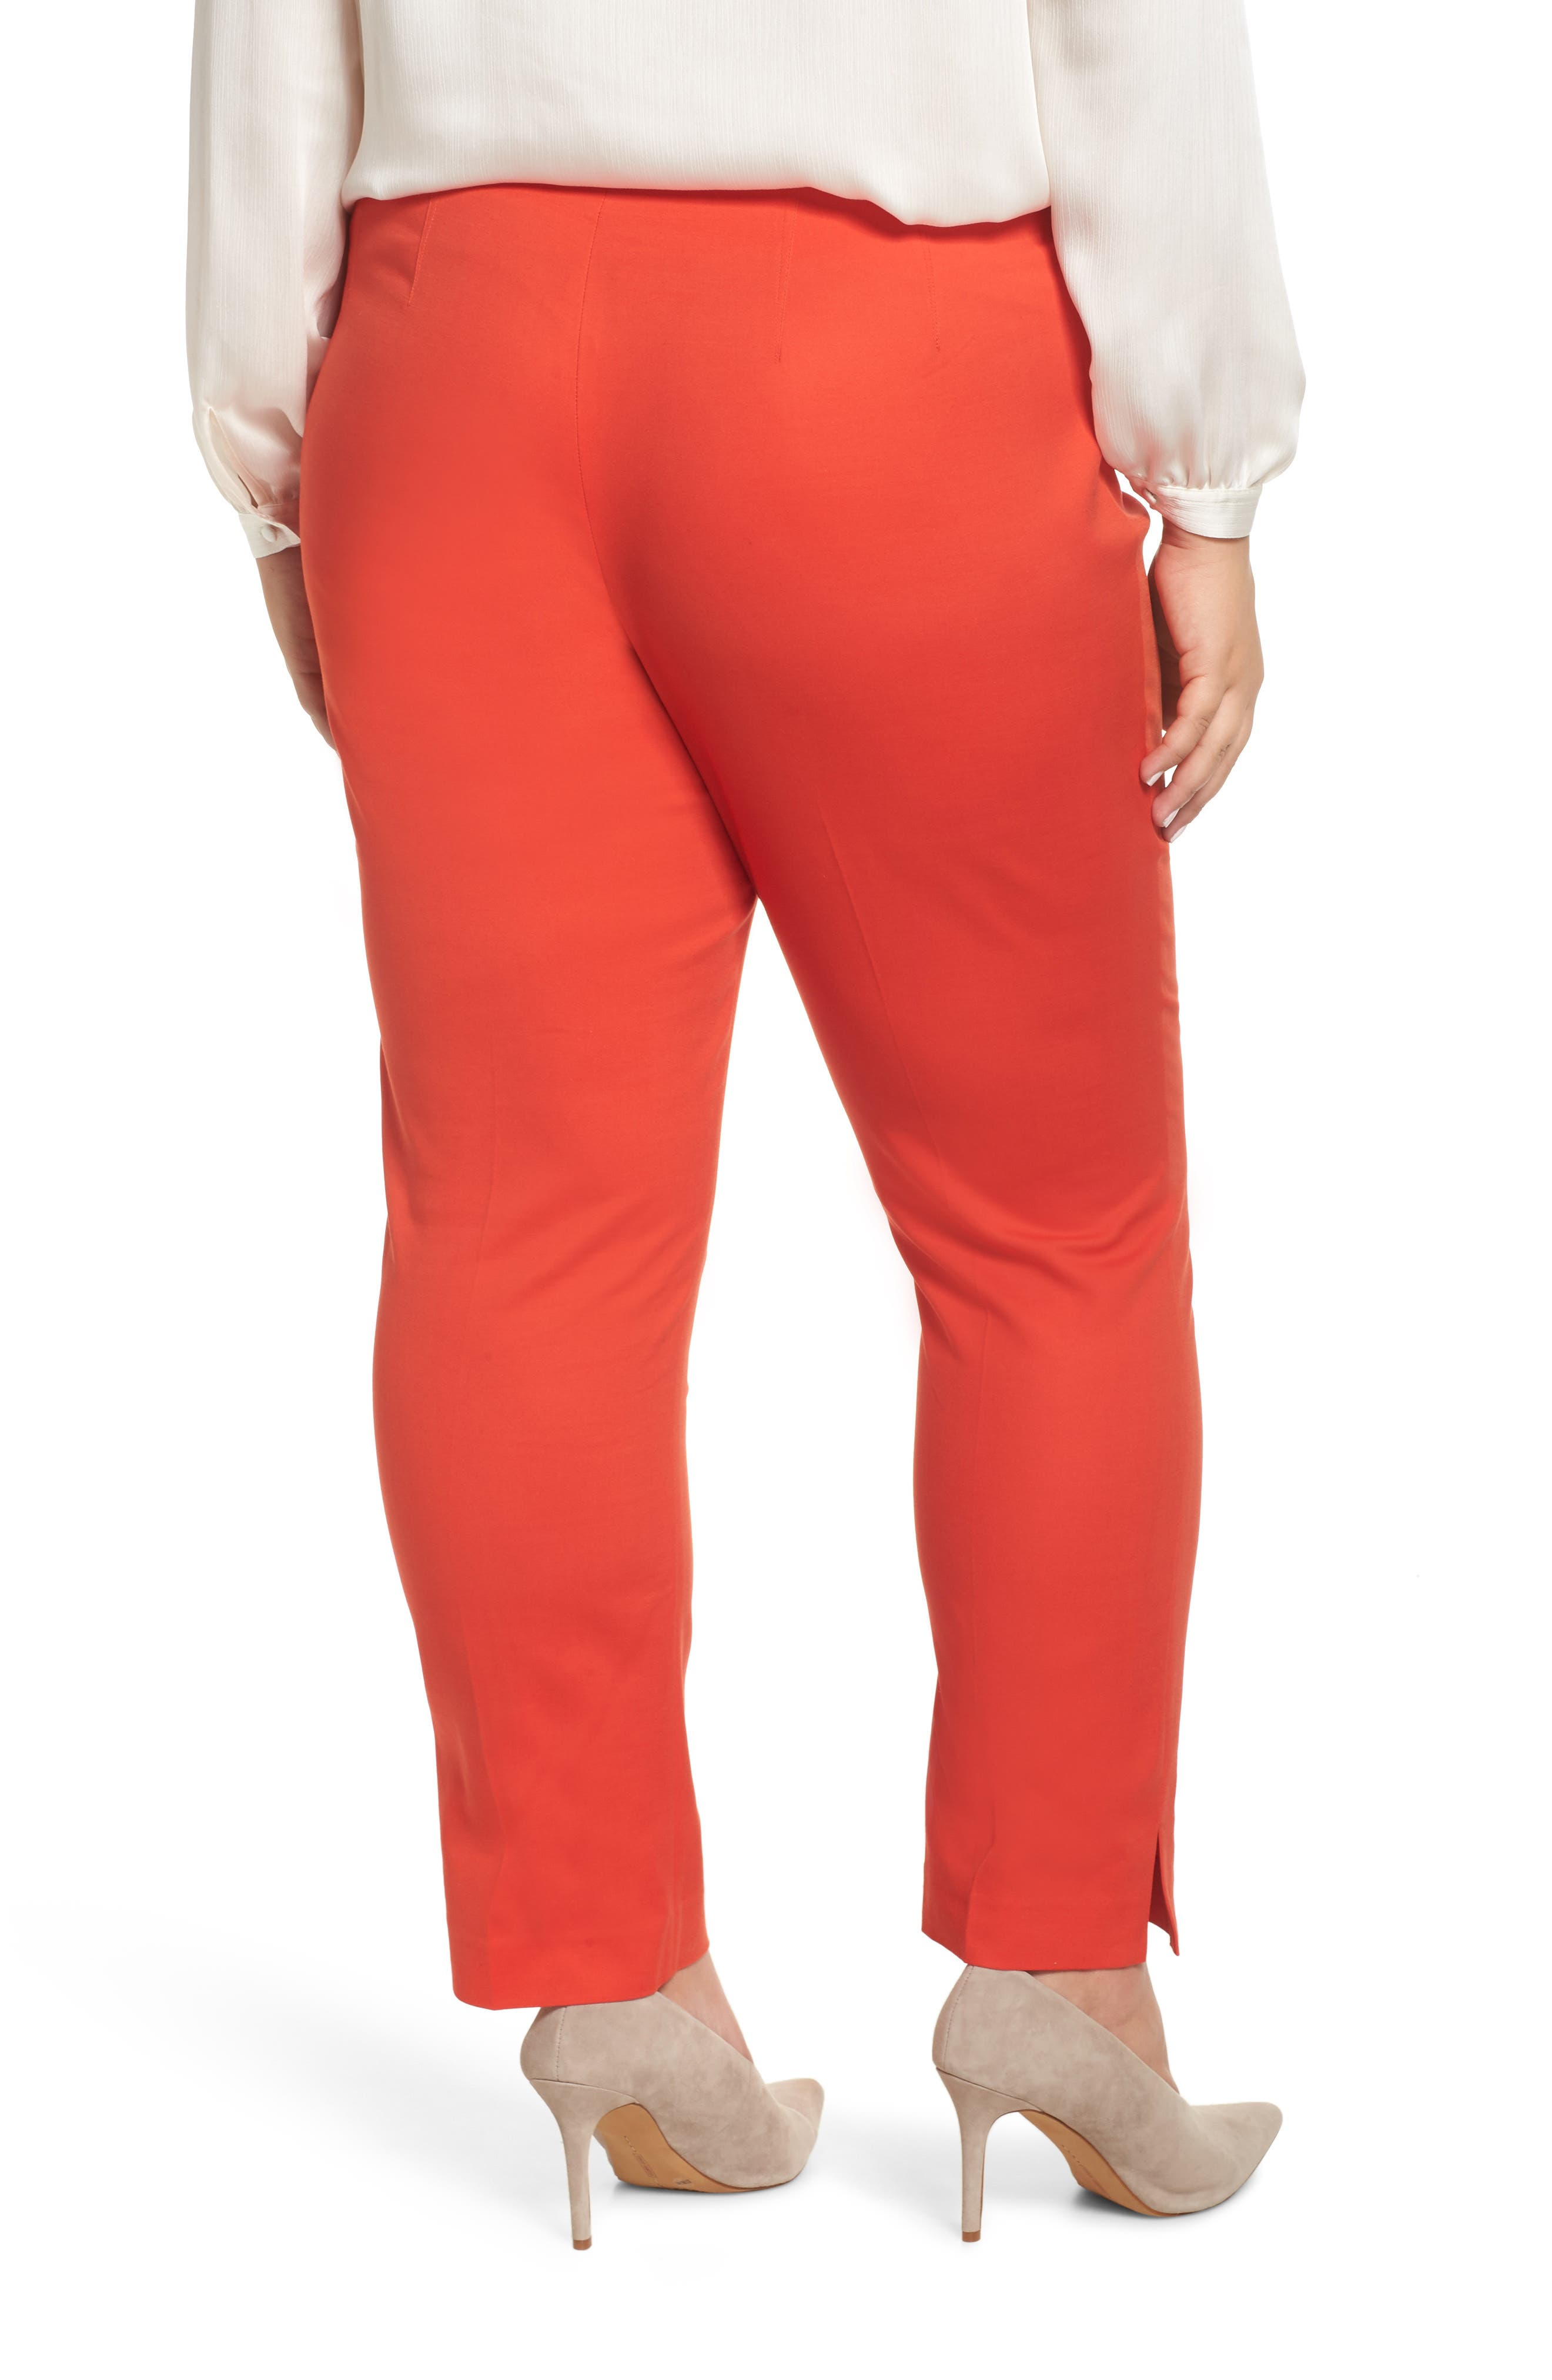 VINCE CAMUTO, Vented Cuff Slim Pants, Alternate thumbnail 2, color, 600